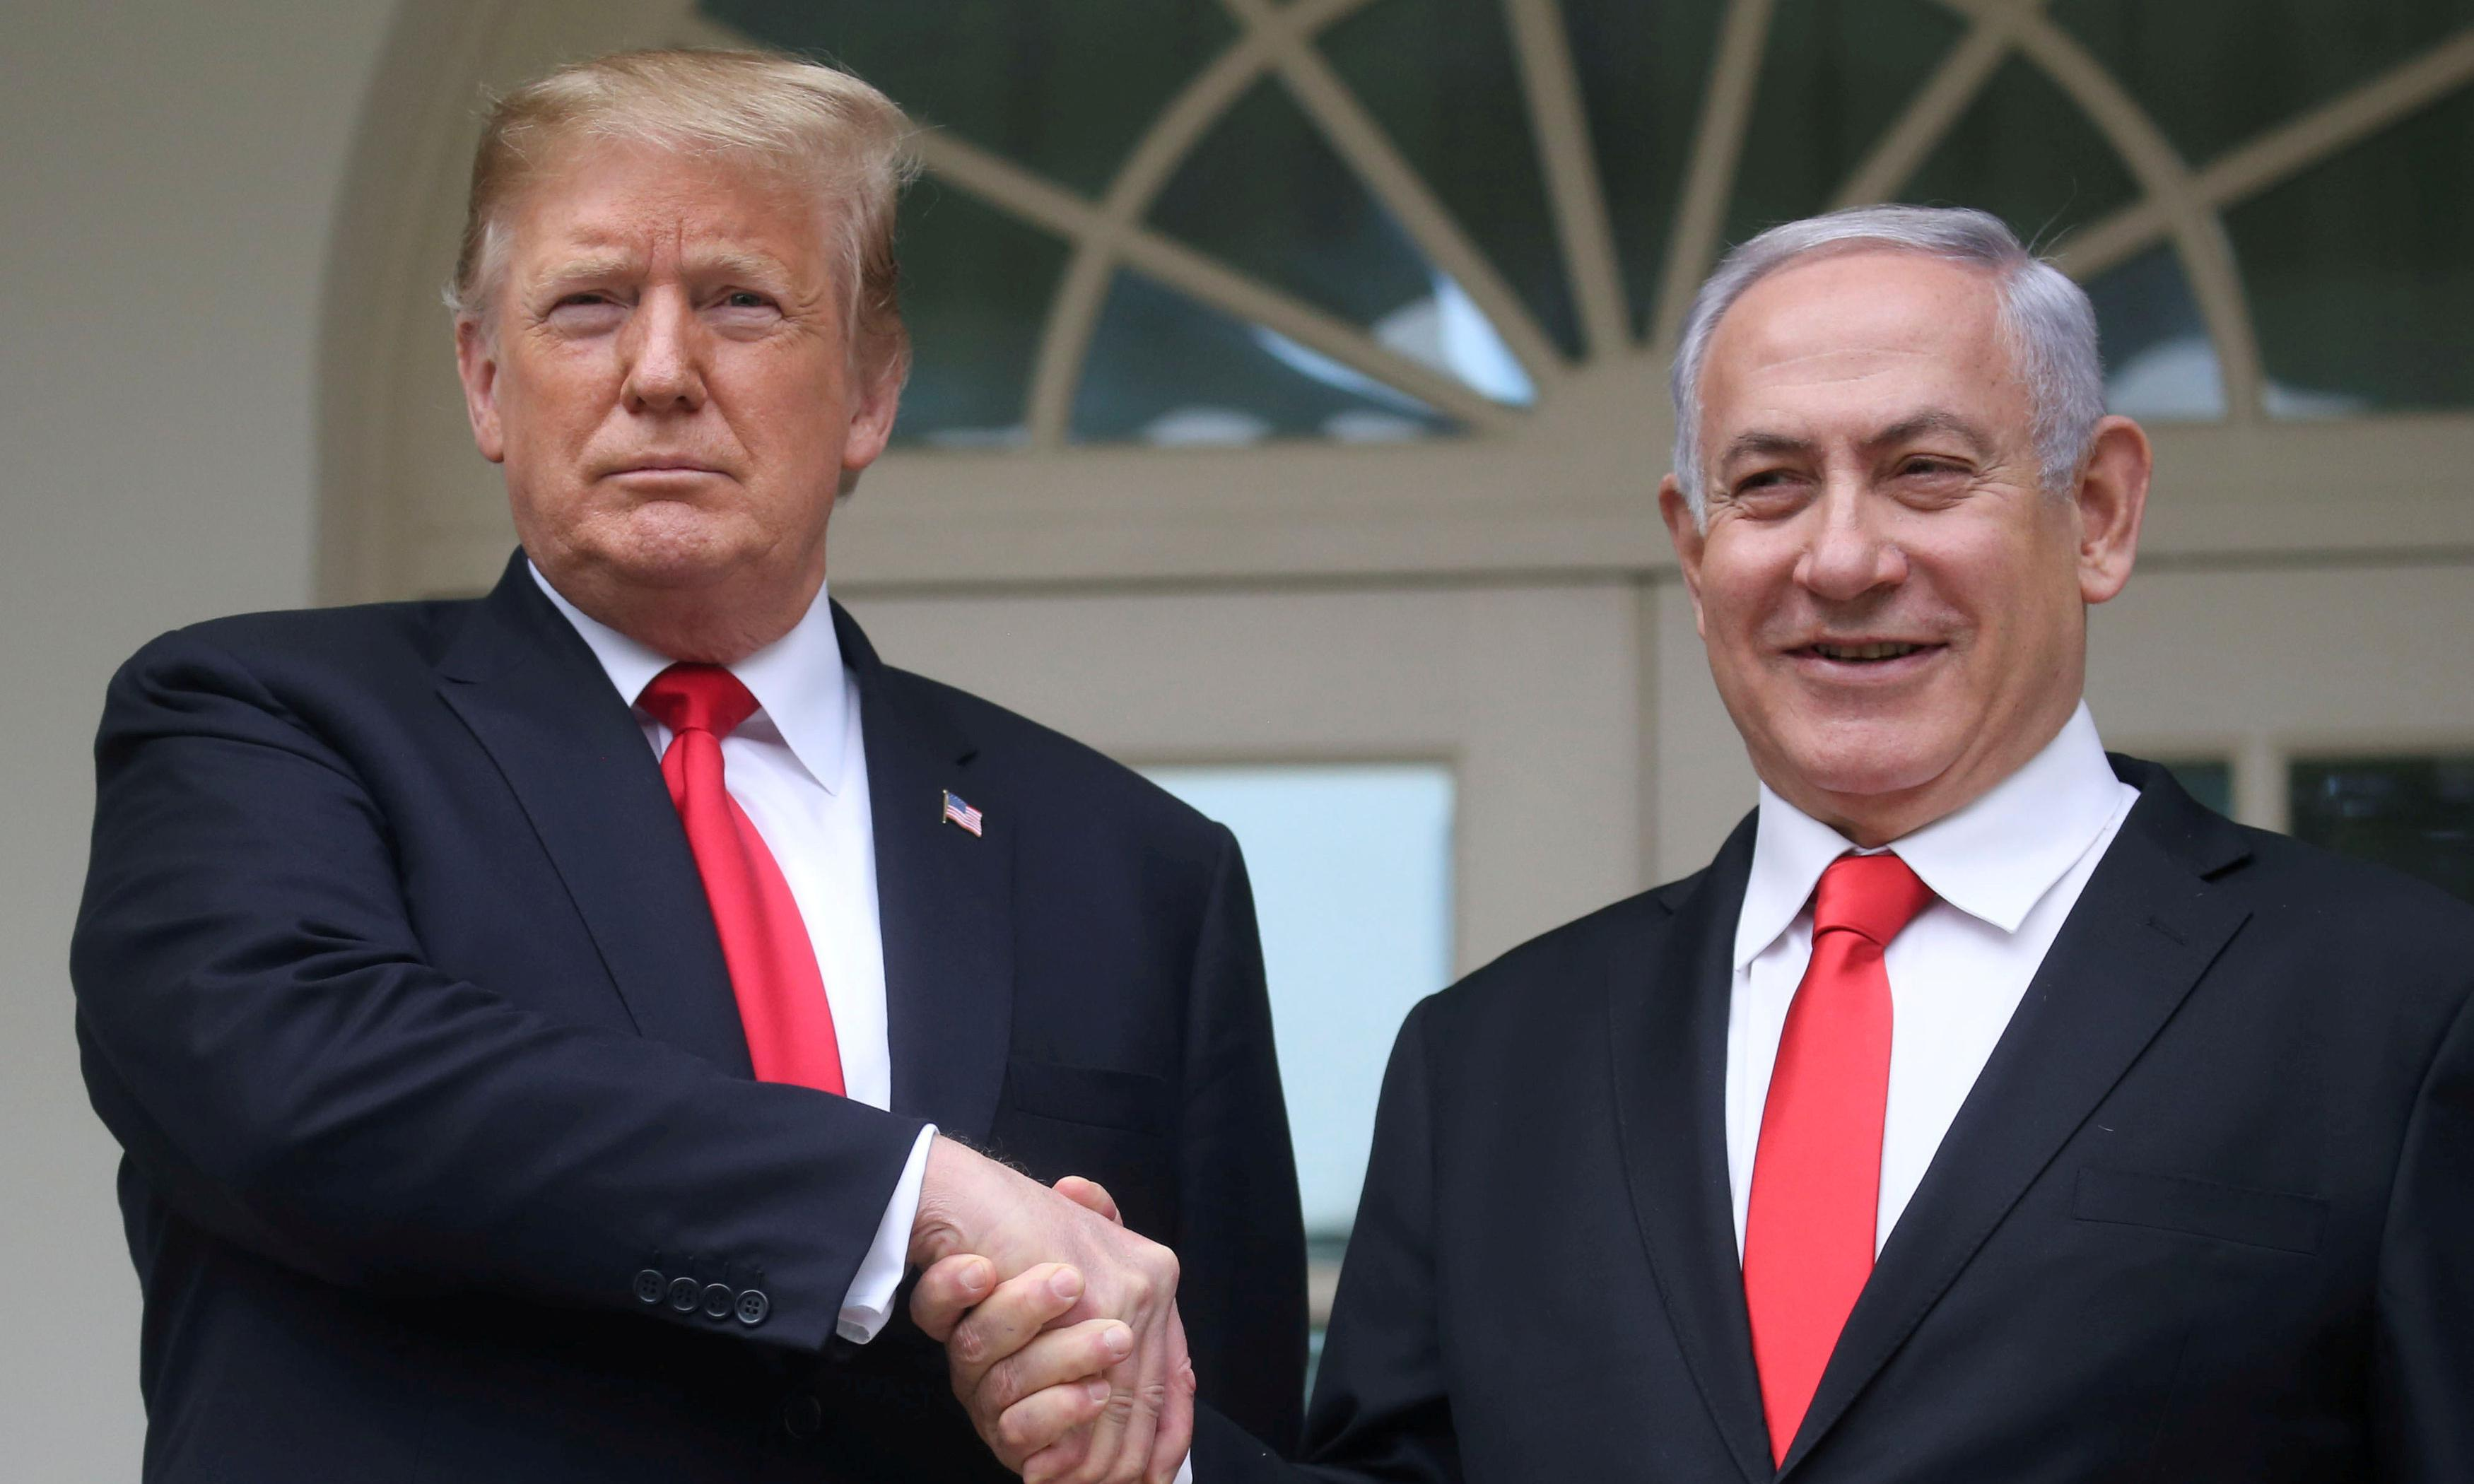 Israel plans to name settlement on occupied land after Trump